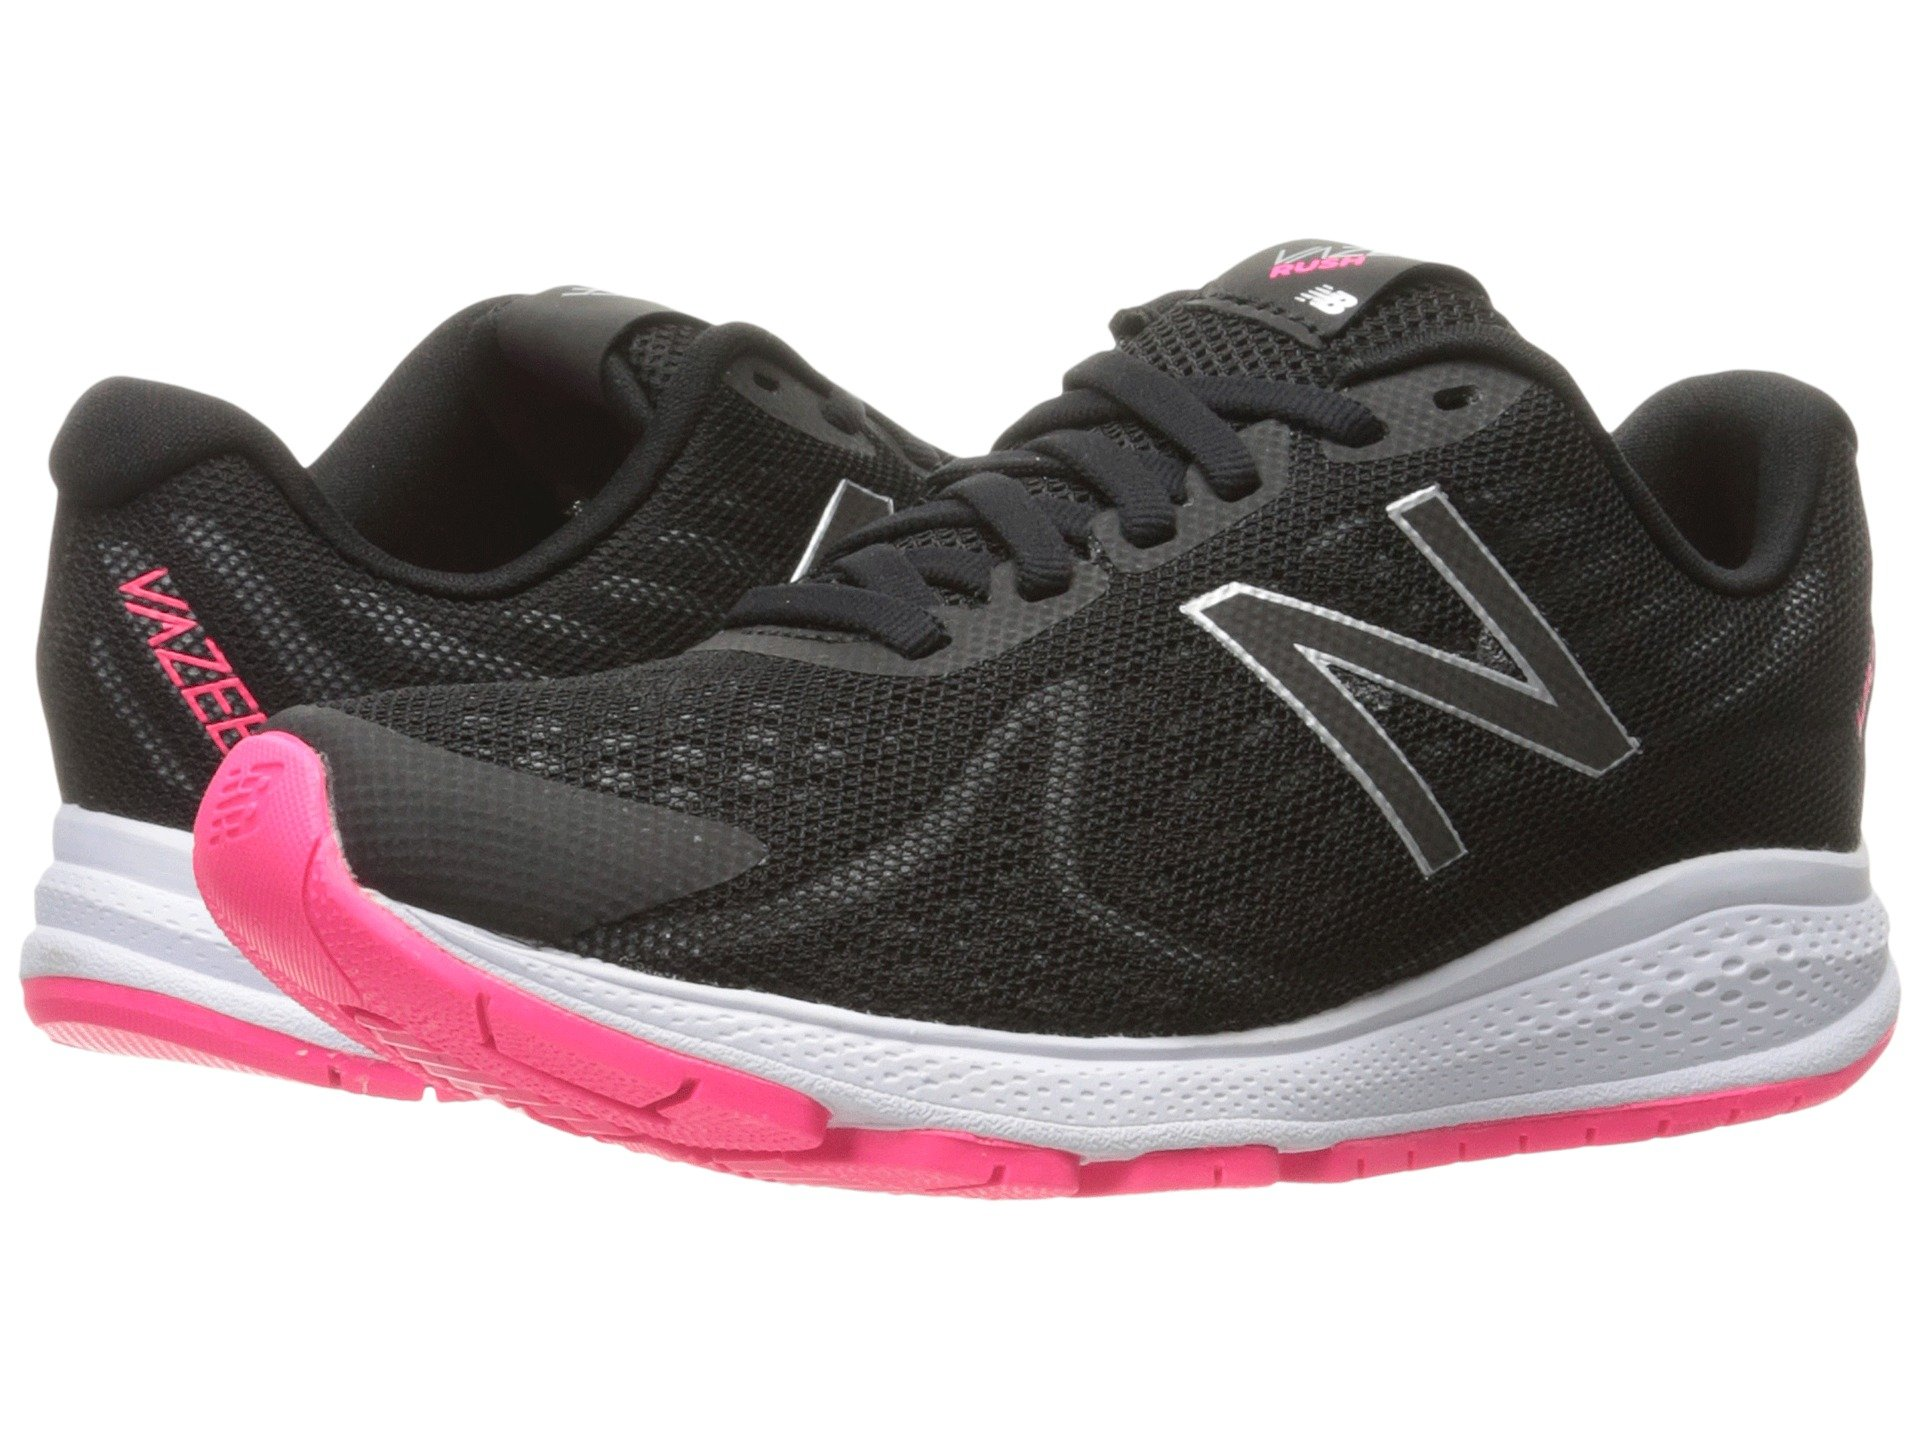 New balance vazee rush v2 mens running shoes black multi online - Pair